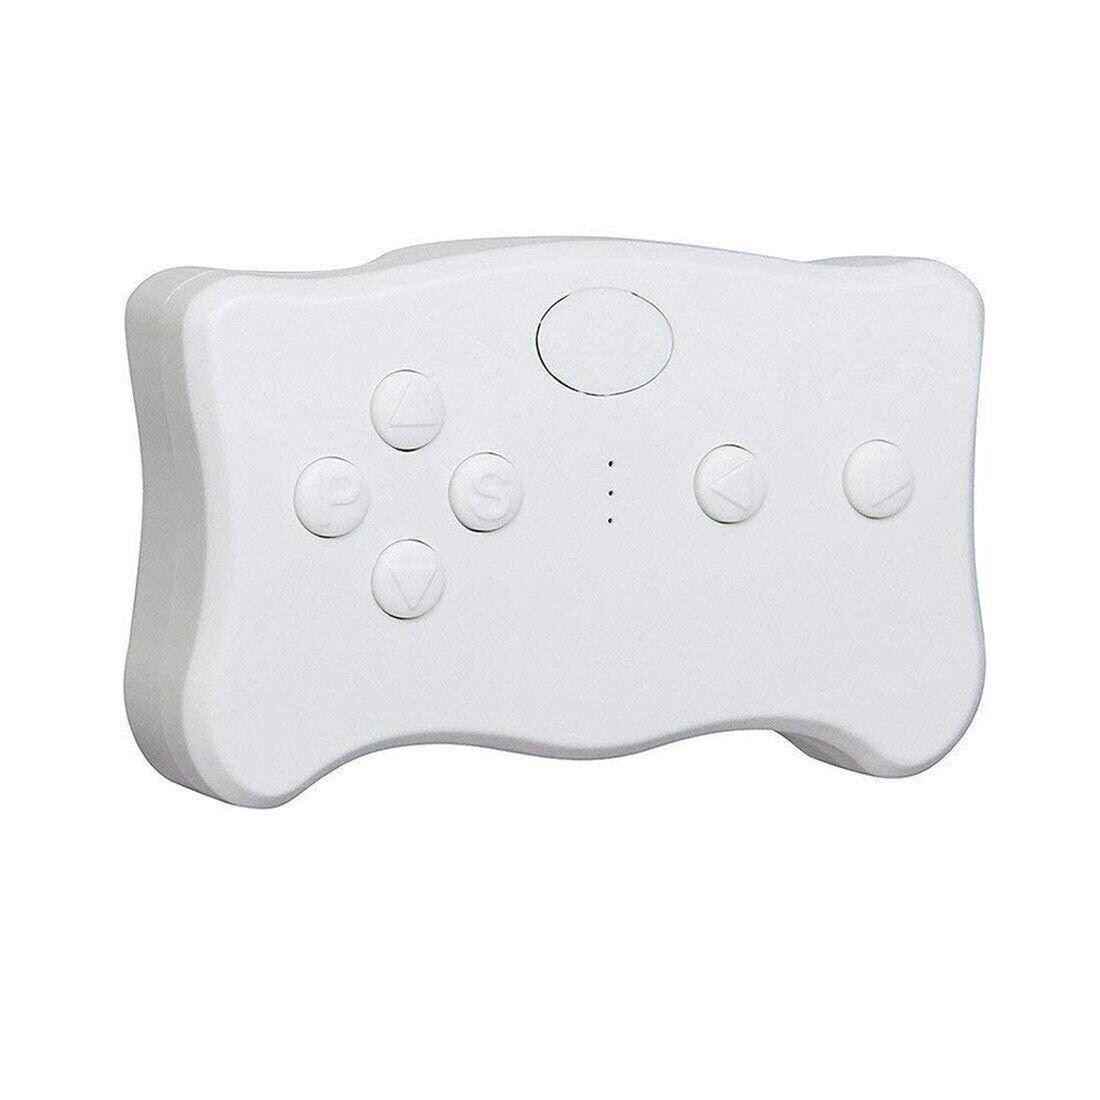 Car Parts - 2.4G Remote Control for Kids Ride On Car | Replacement Parts White Weelye Remote